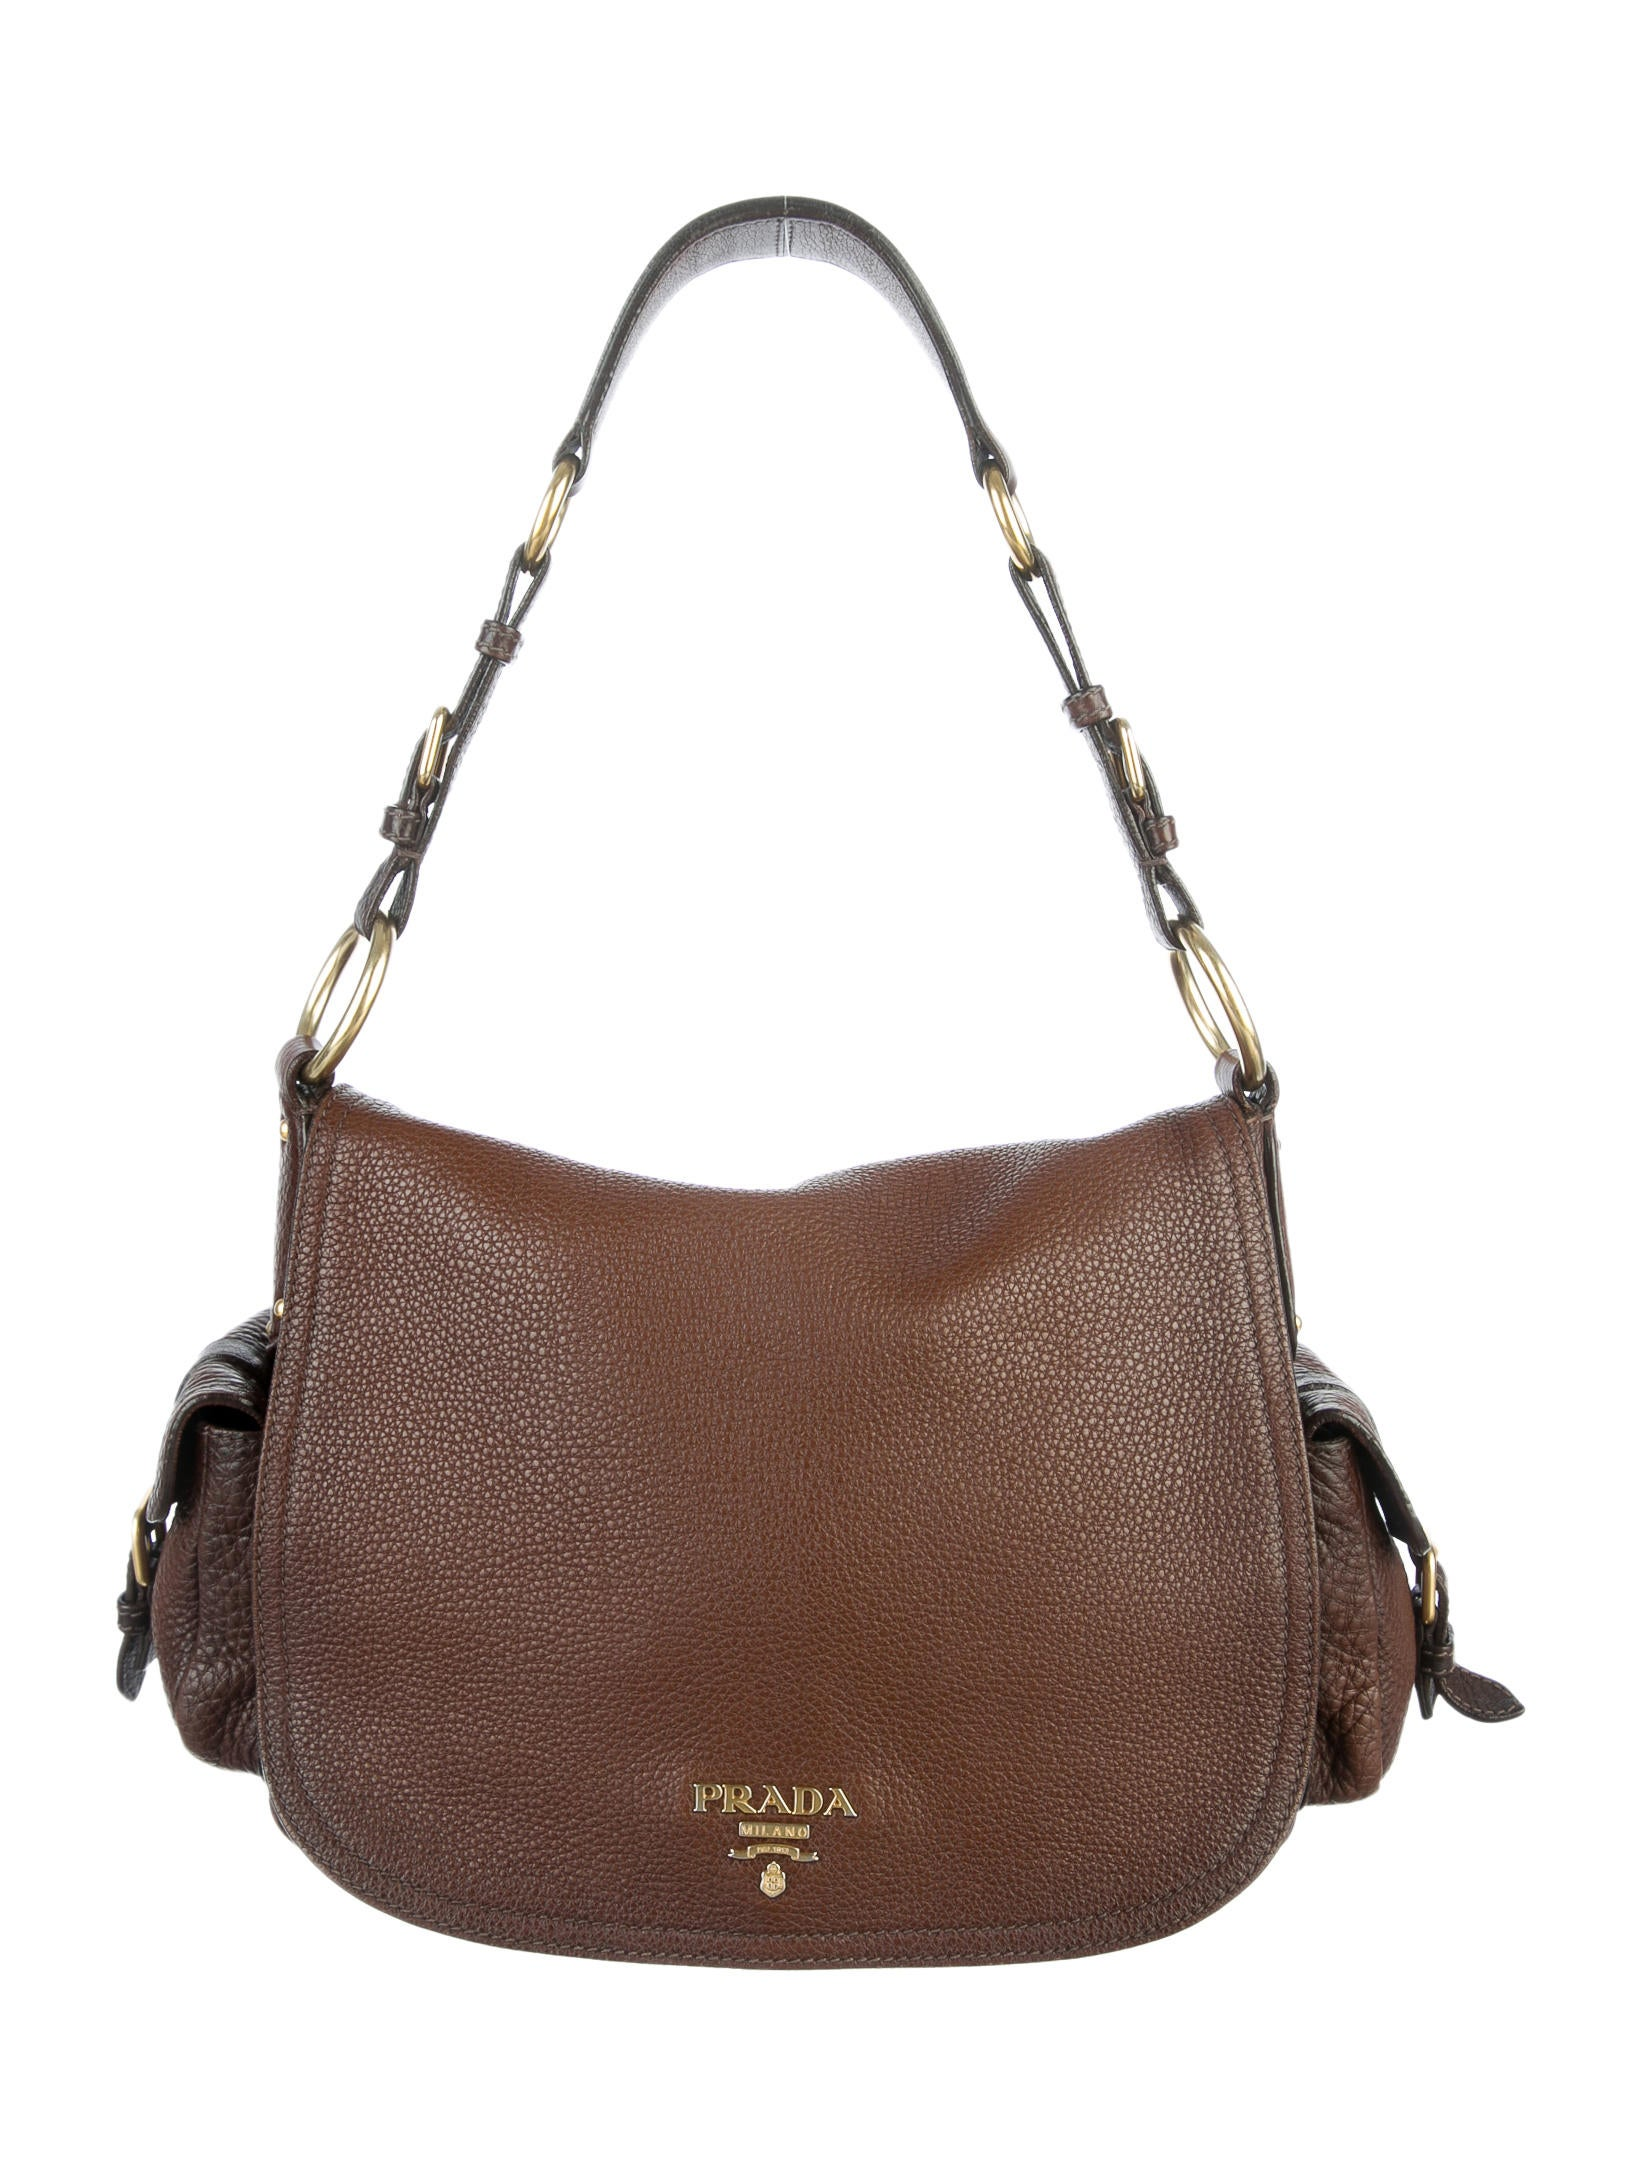 f48add296b1e Prada Vitello Daino Flap Bag - Handbags - PRA50155